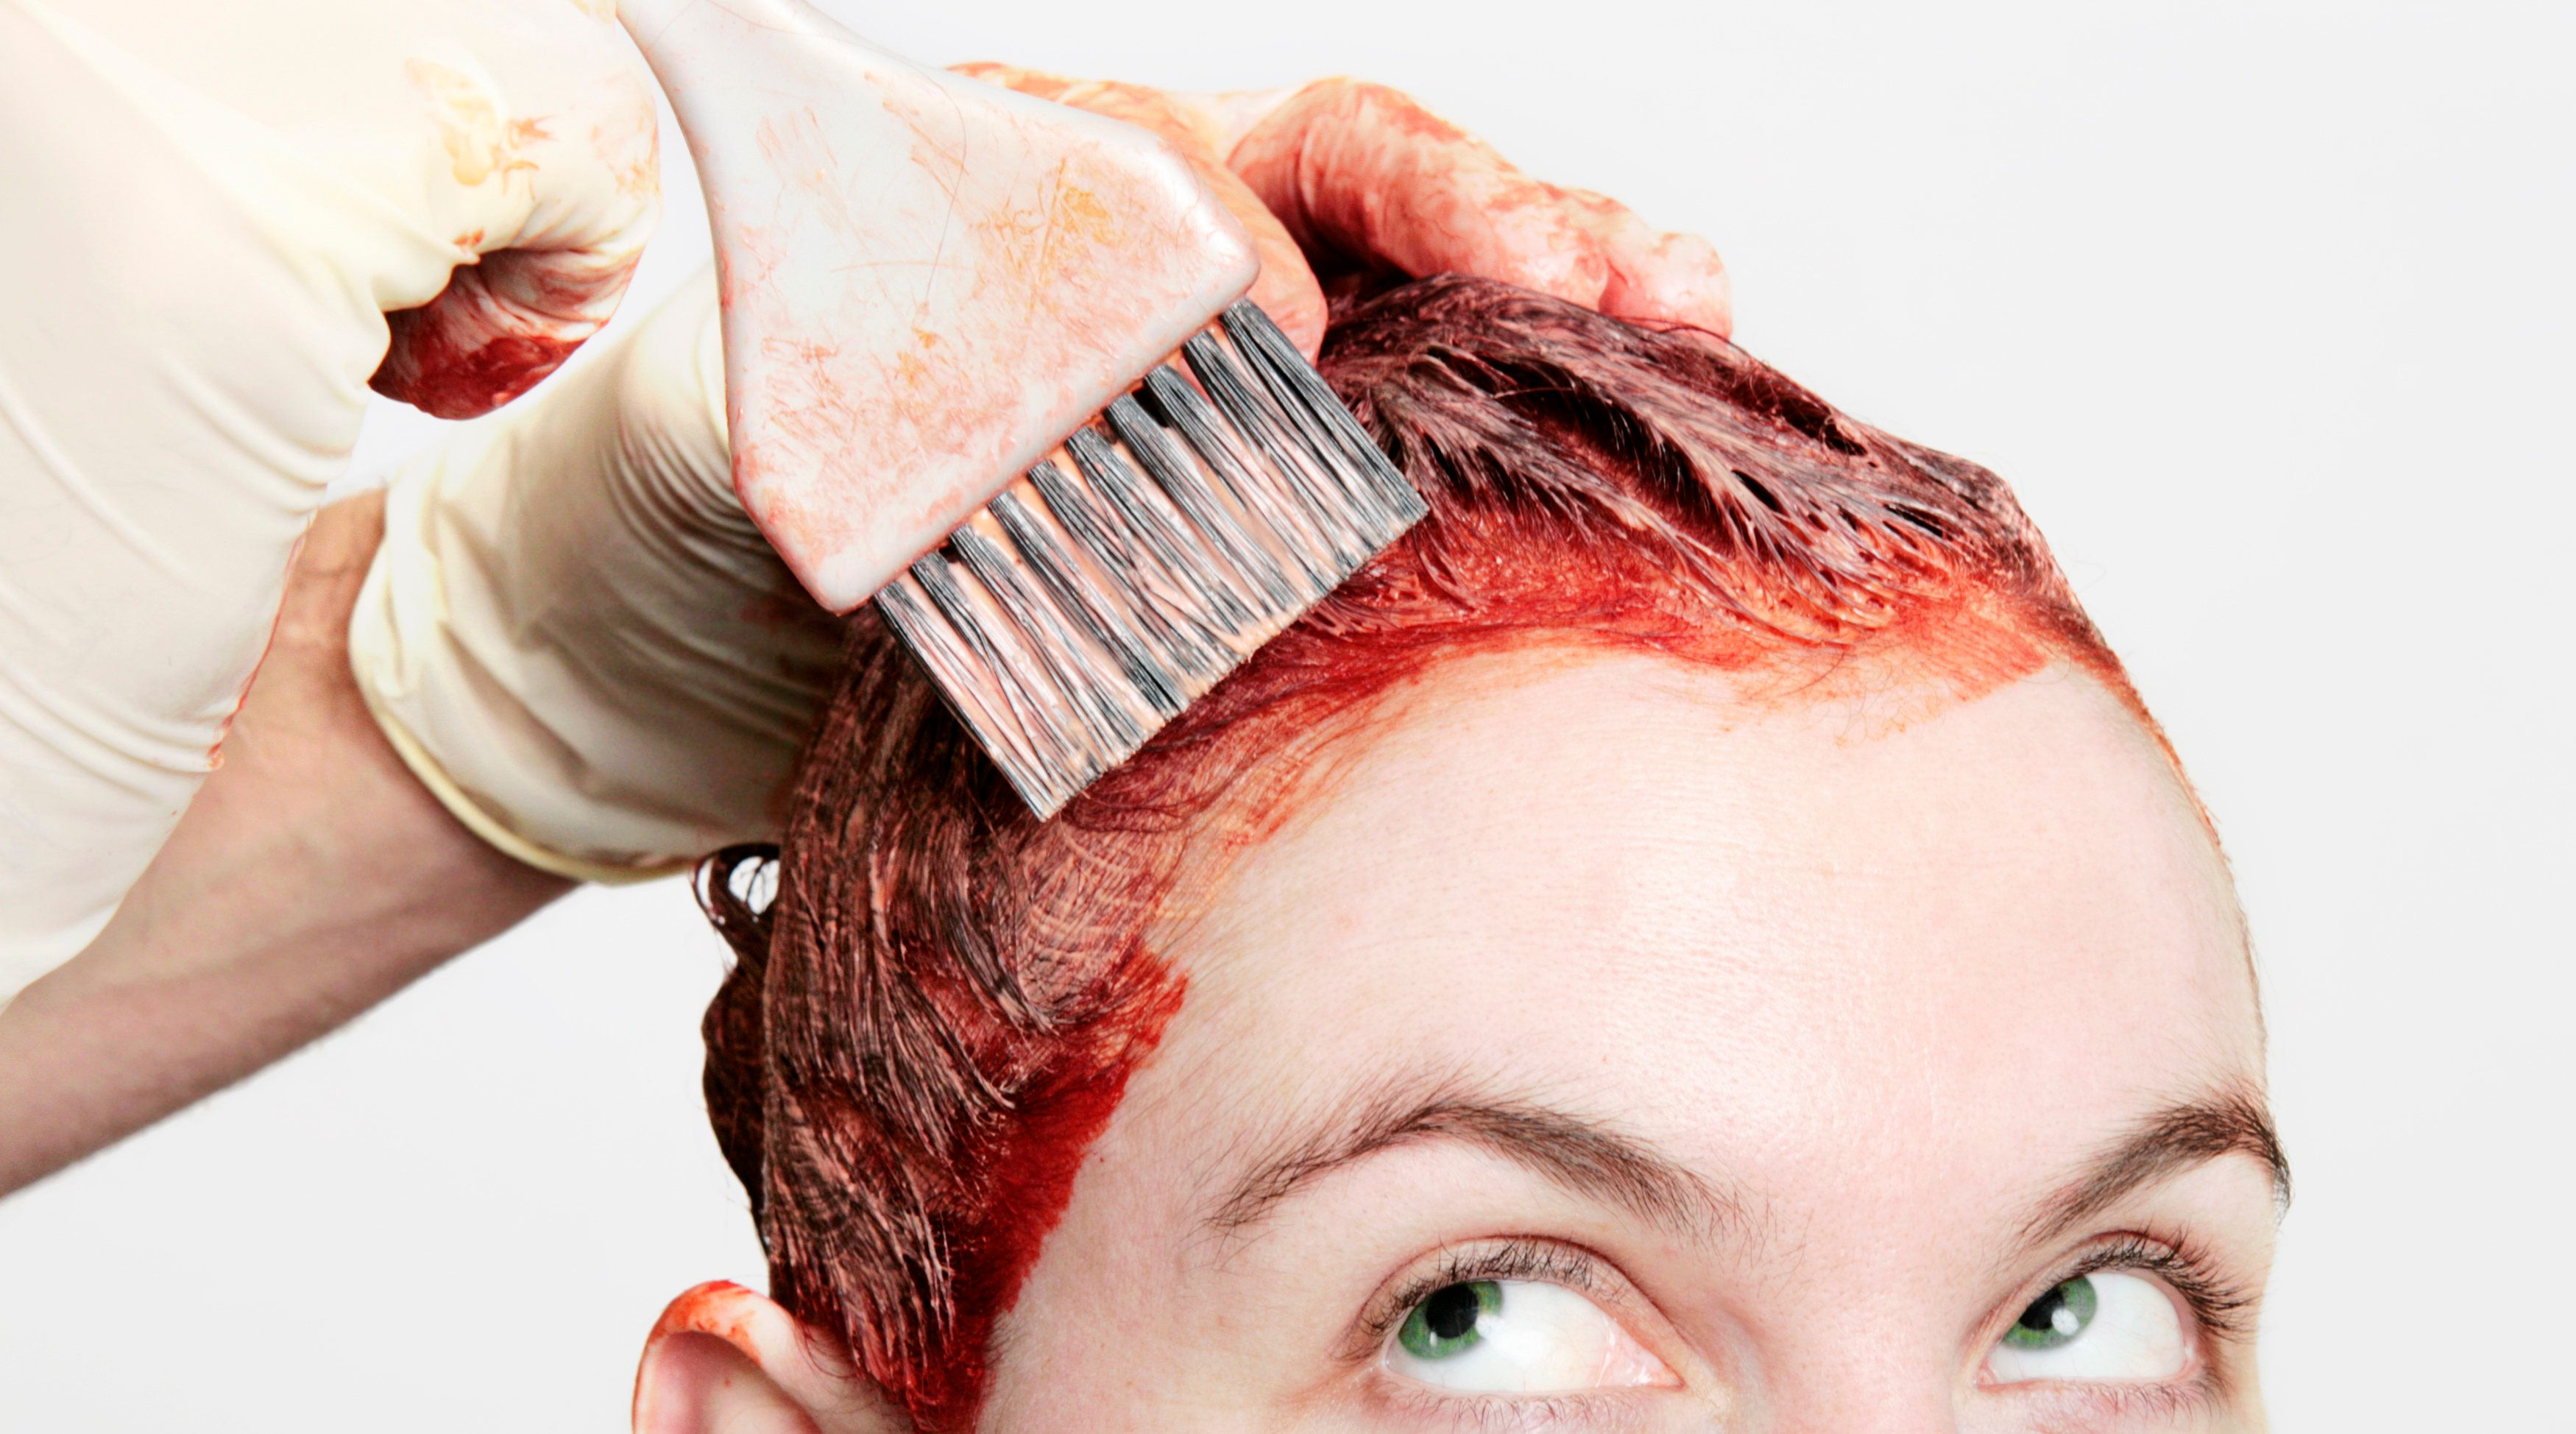 Permanent hair dye being applied with a watchful eye.